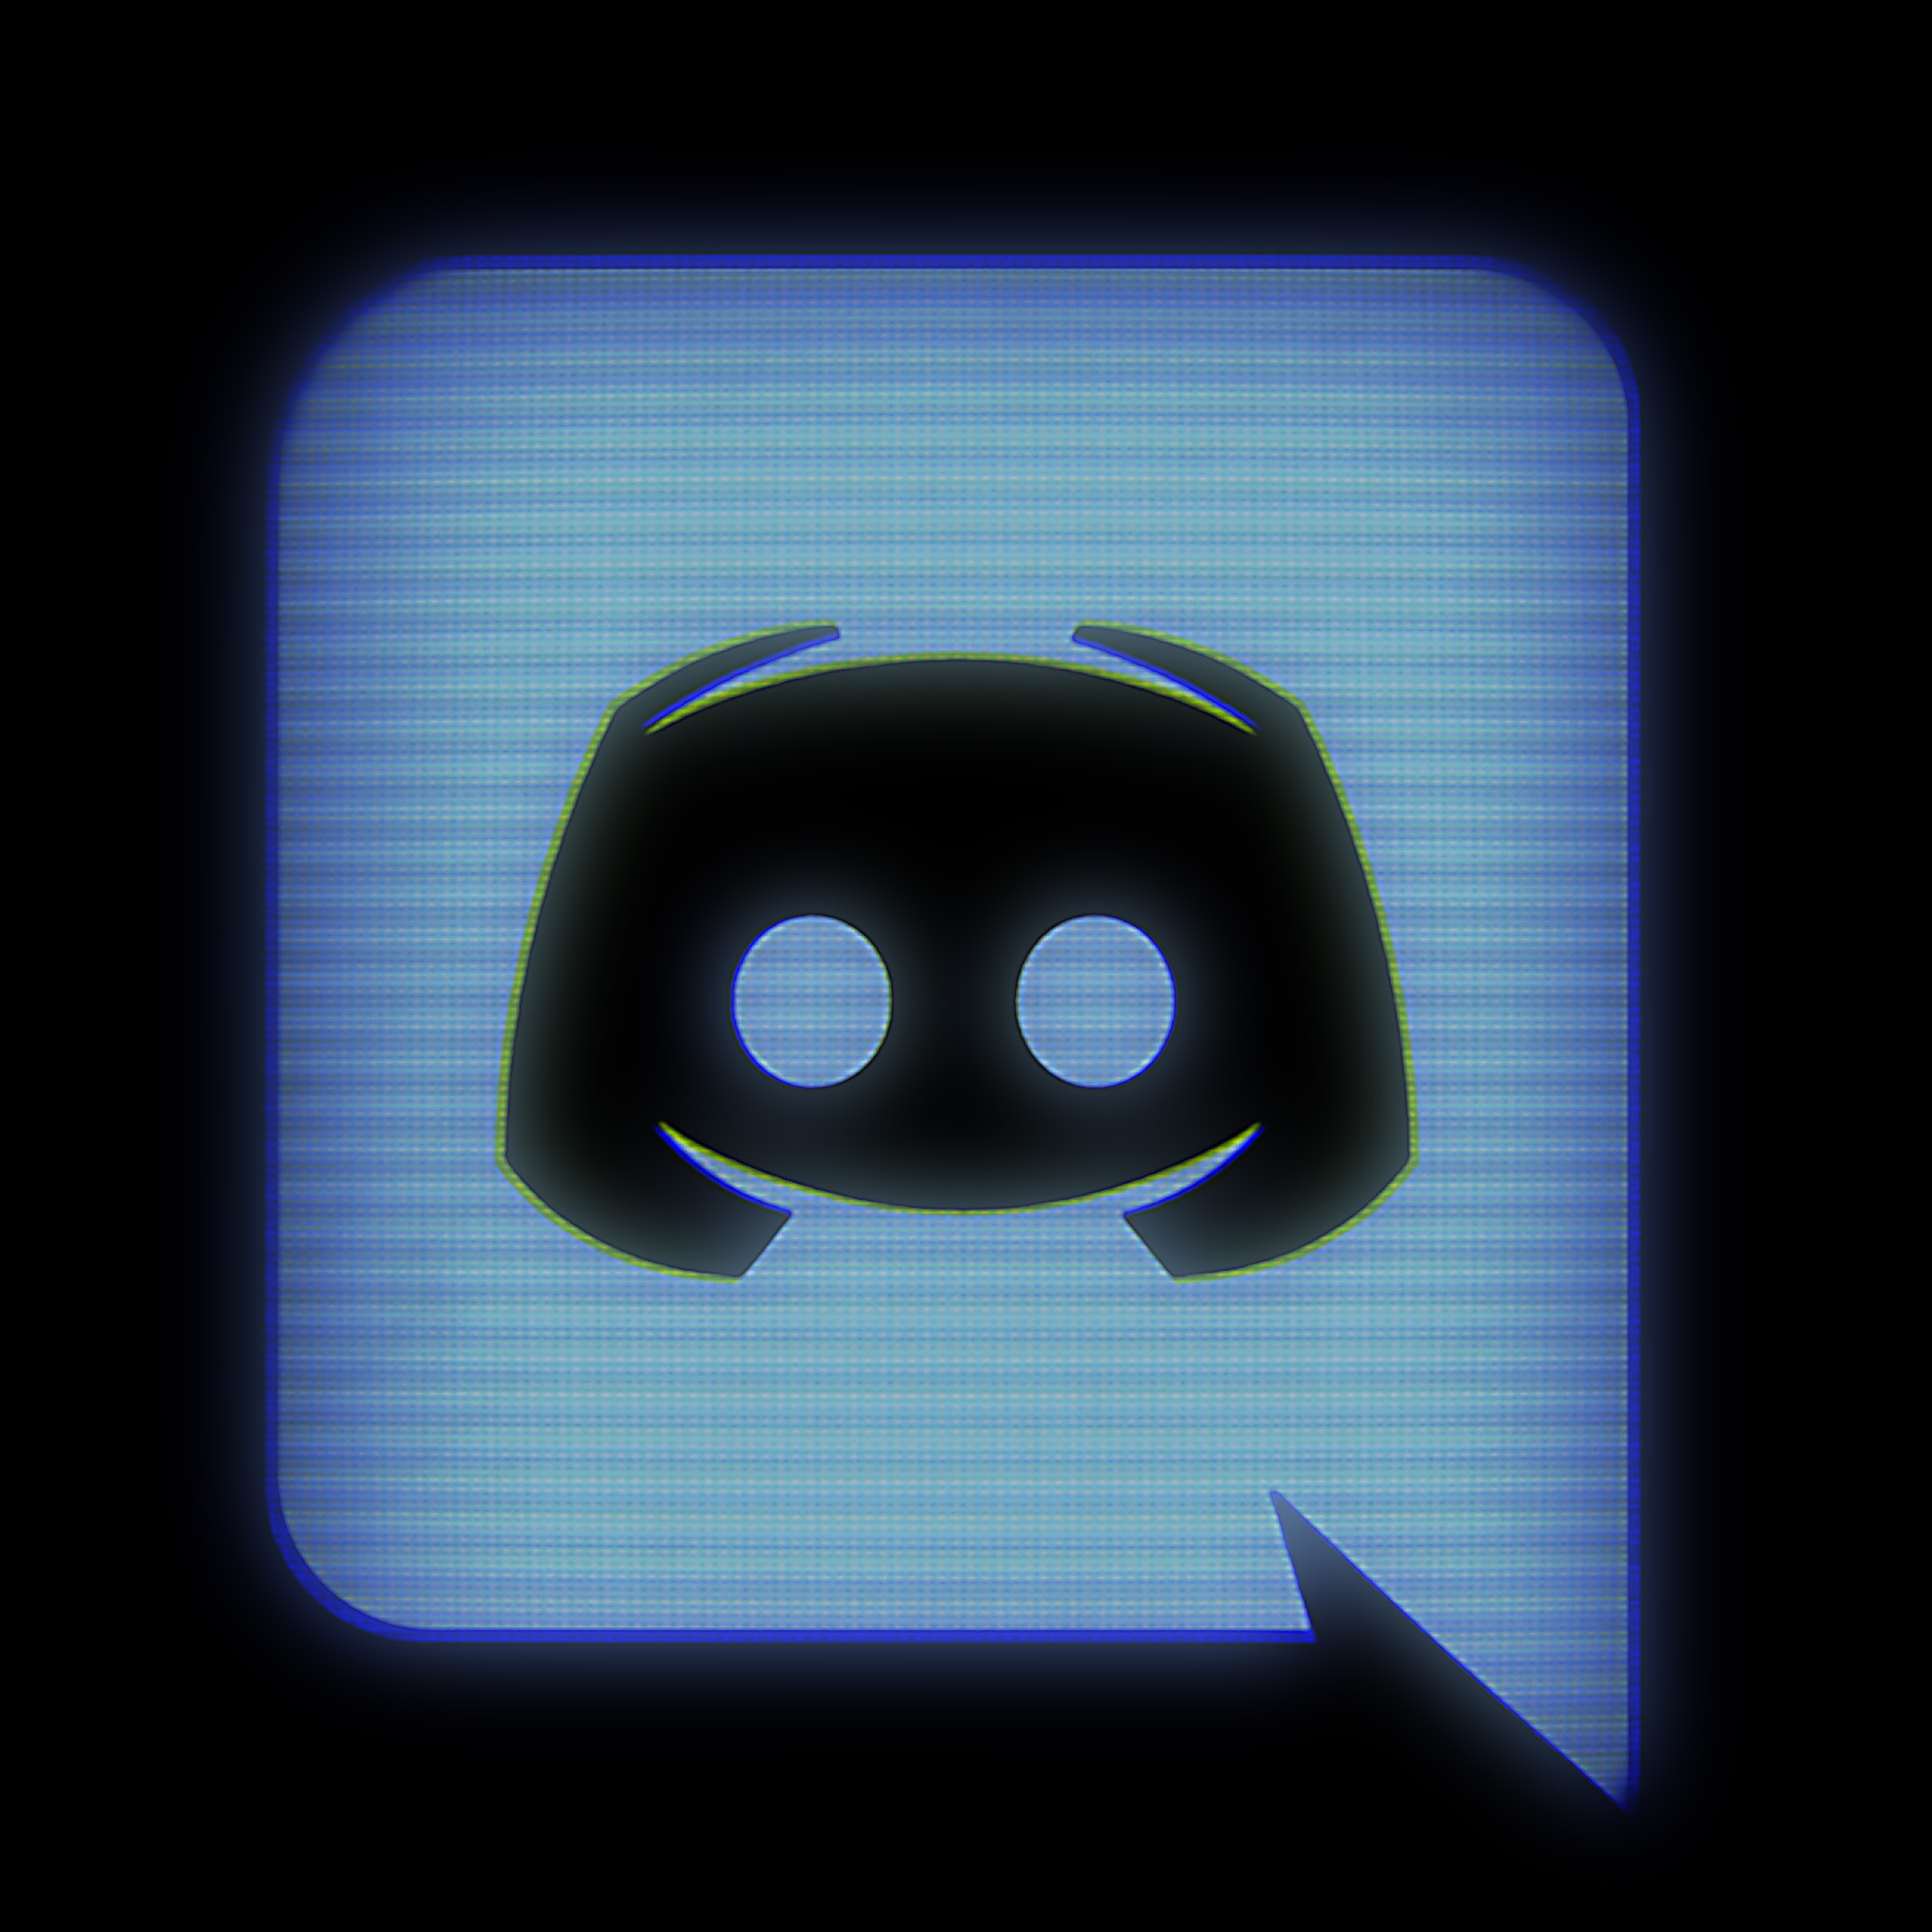 how to add people to public discord servers